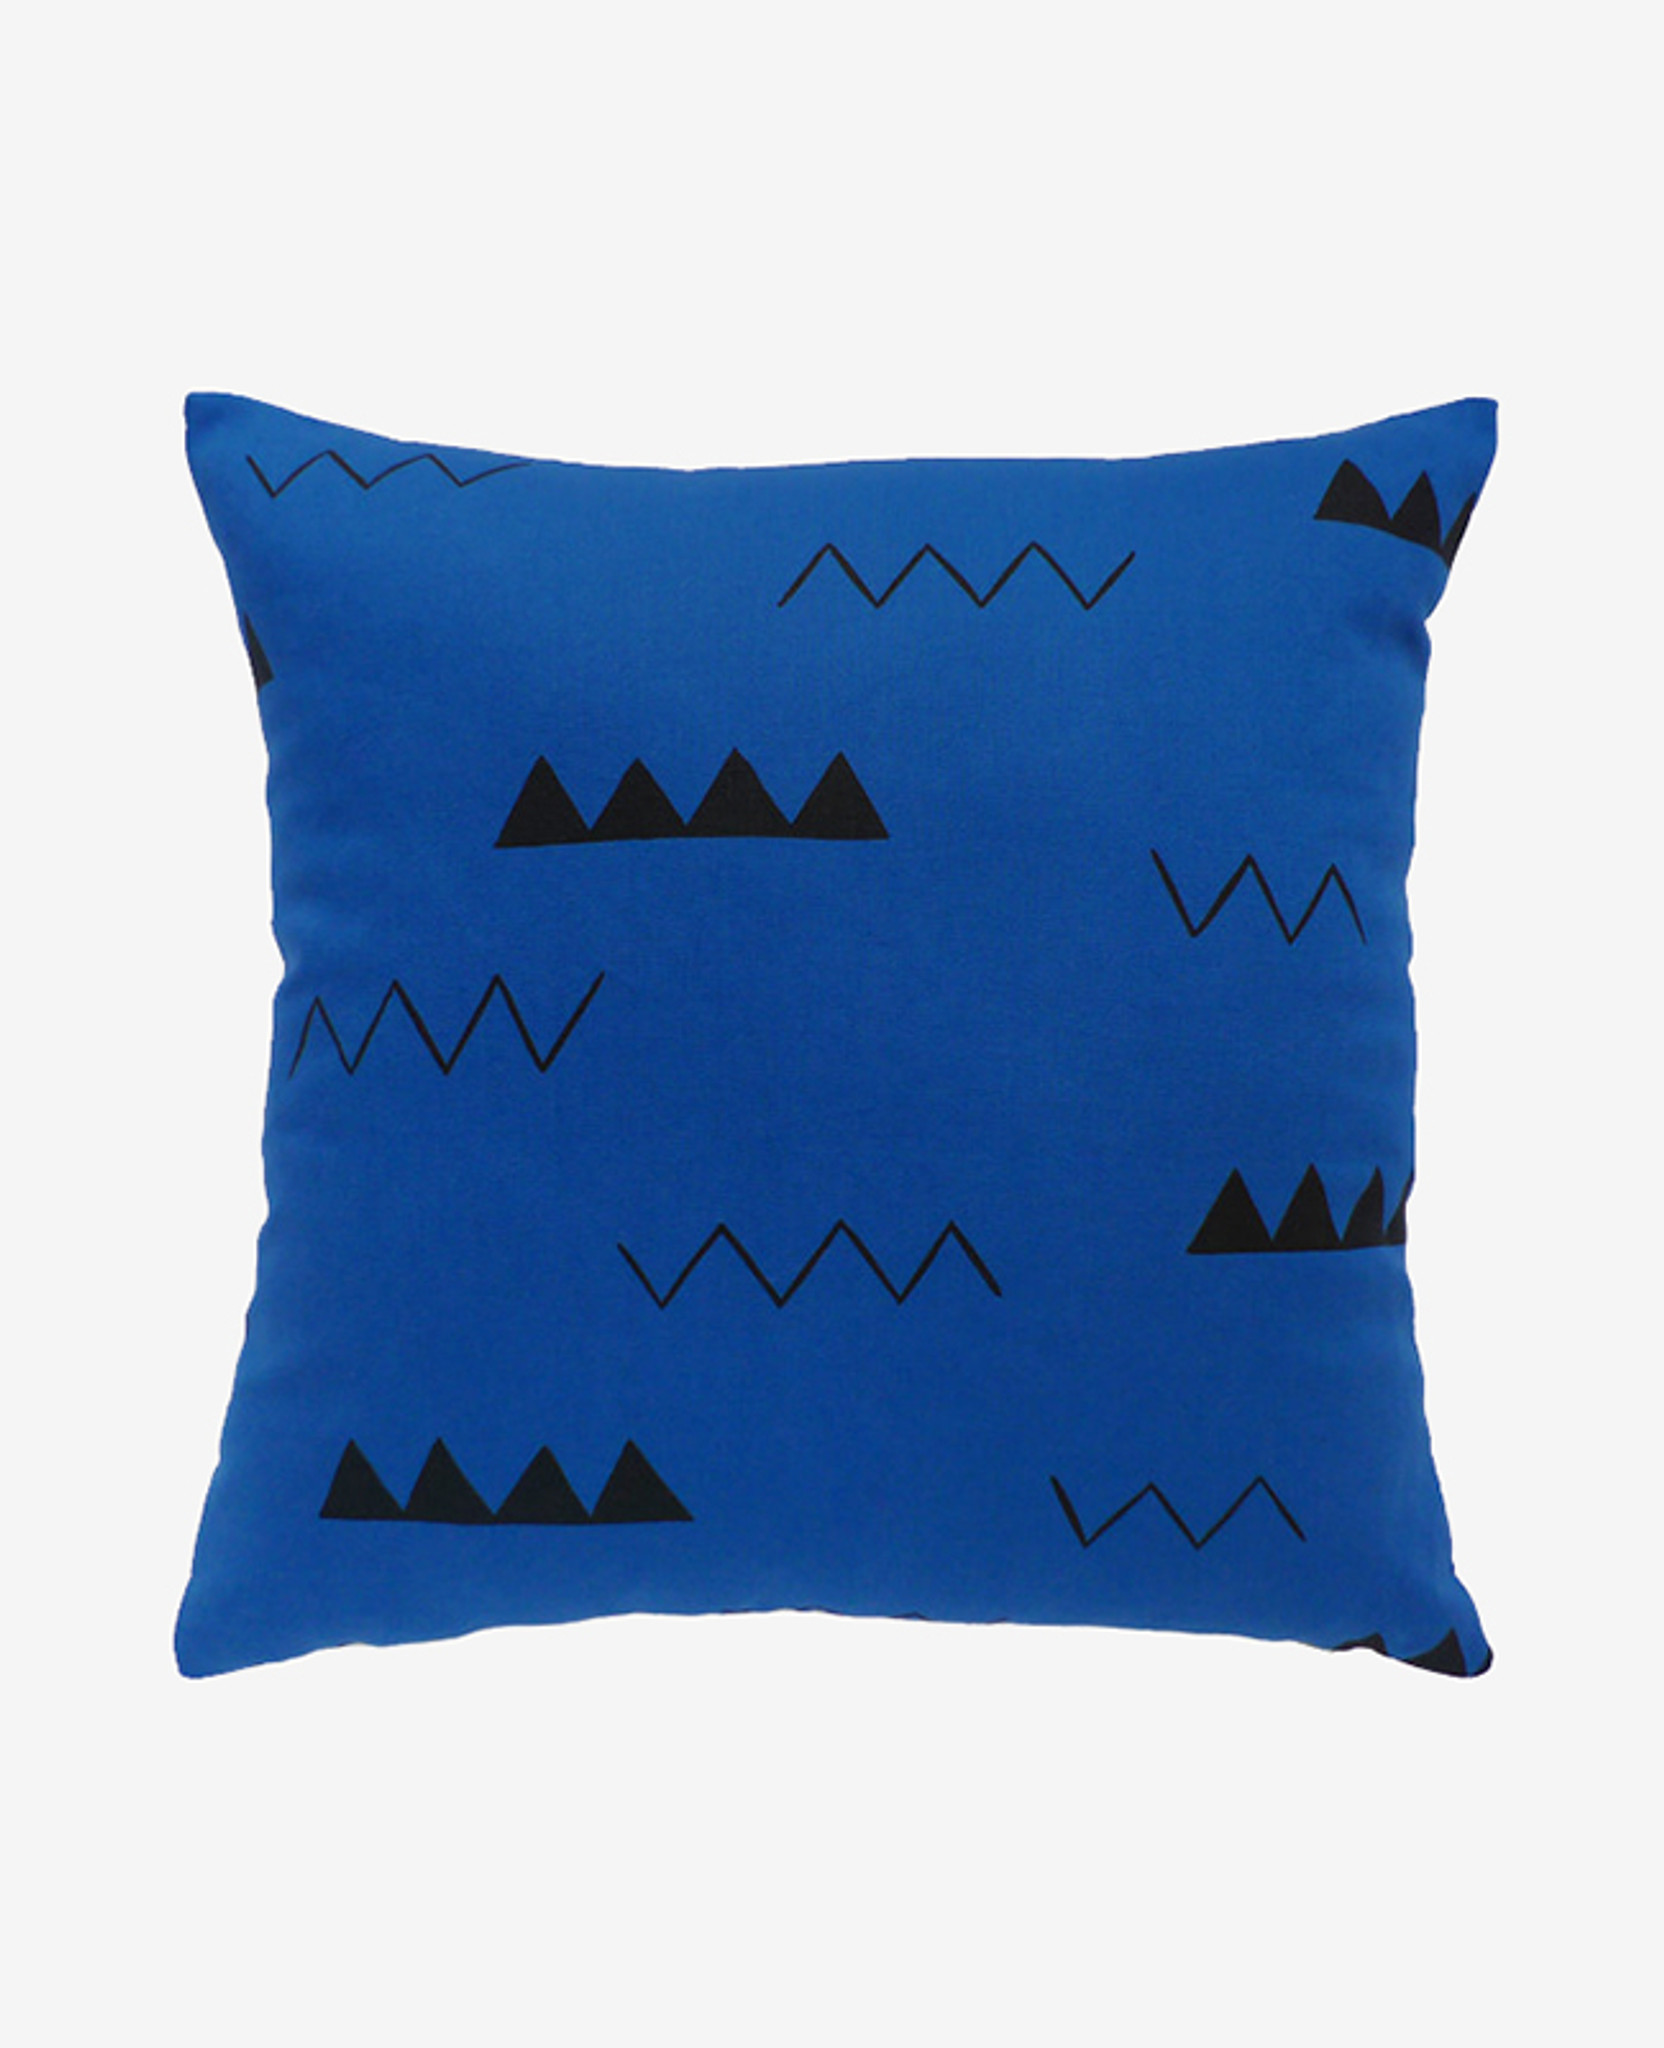 Indigo Blue Zig Zag Pillow